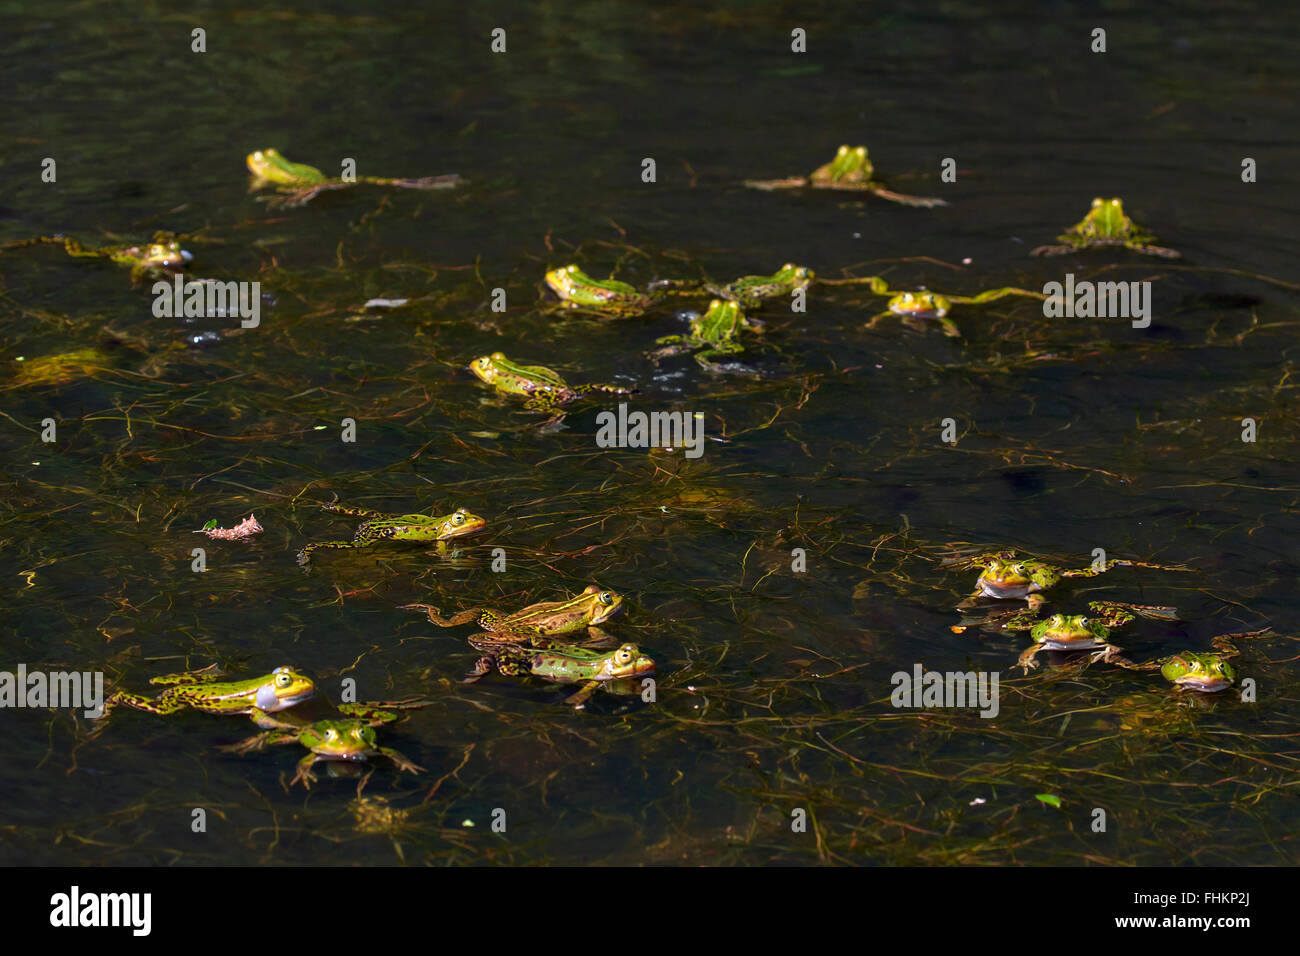 Edible frogs / green frog (Pelophylax kl. esculentus / Rana kl. esculenta) group floating in pond in the mating - Stock Image